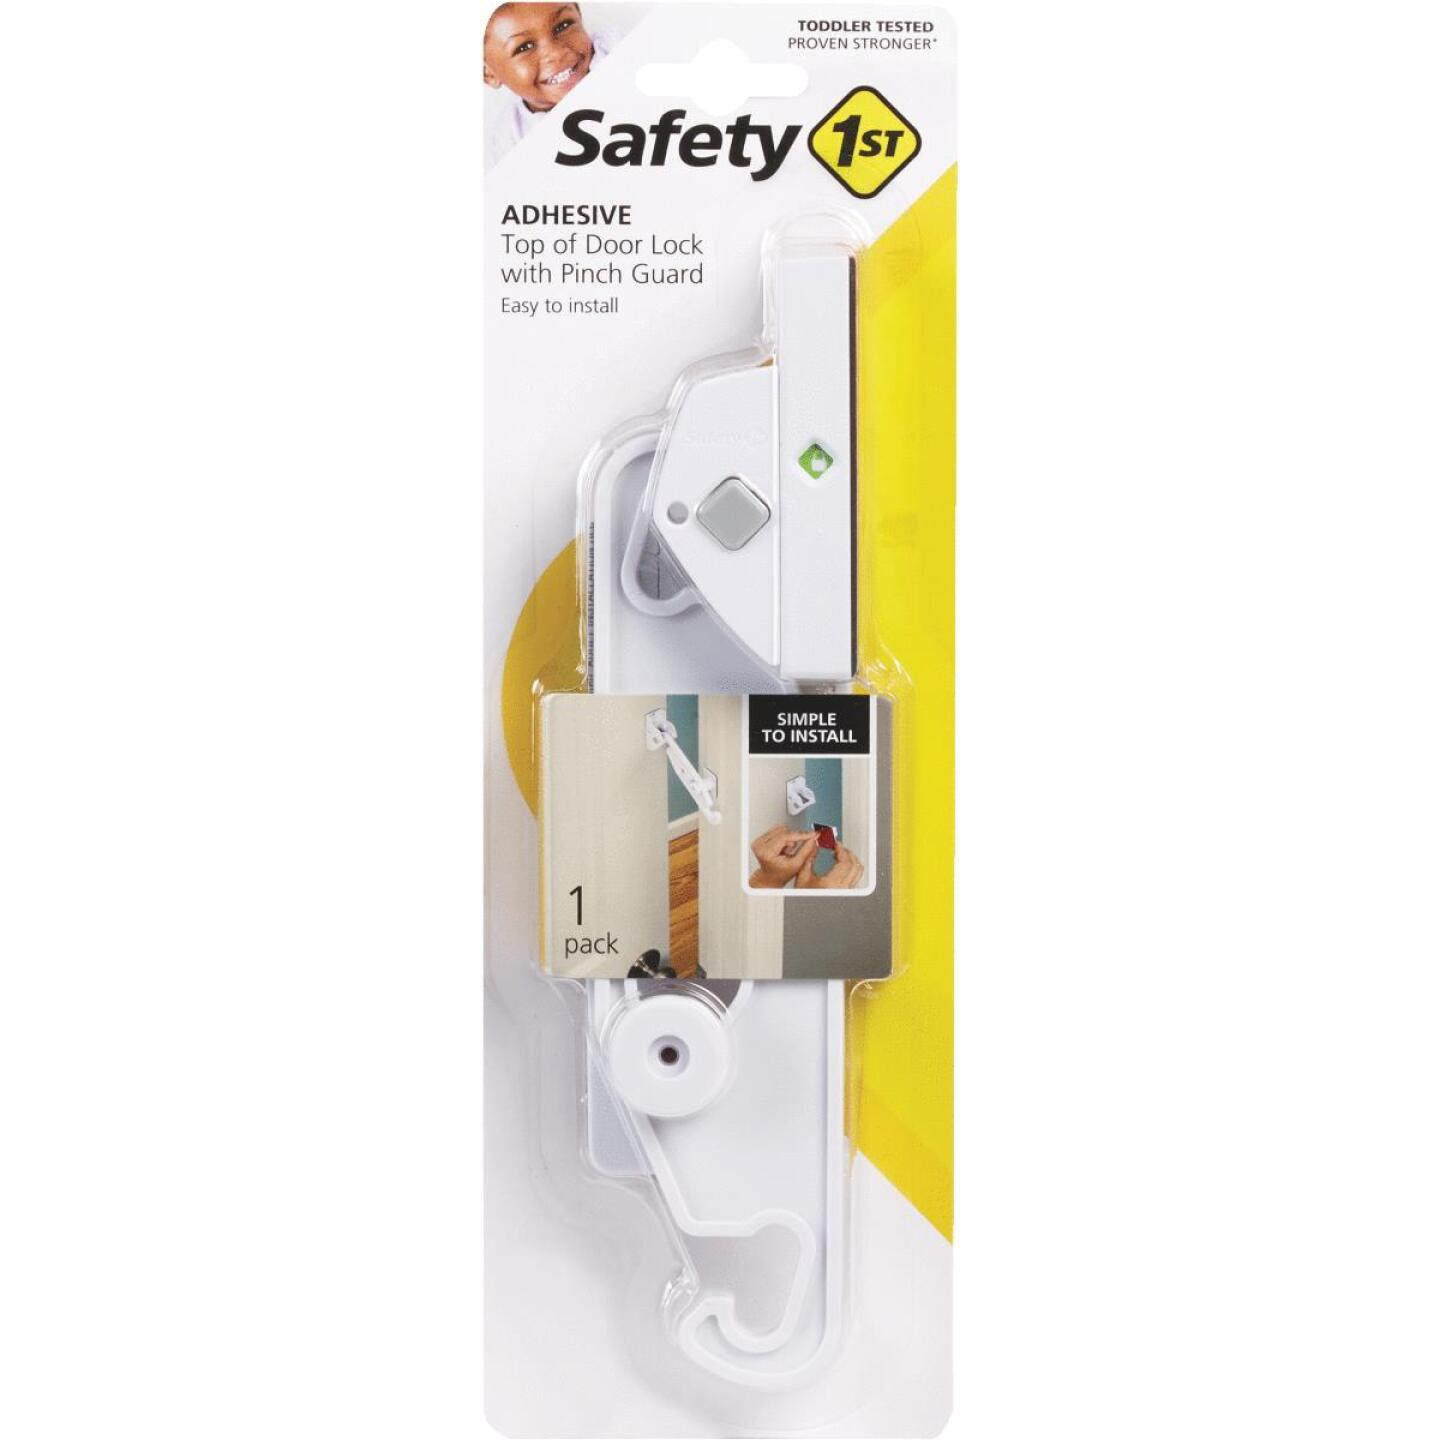 Safety 1st No Drill Top of Door Lock Image 1